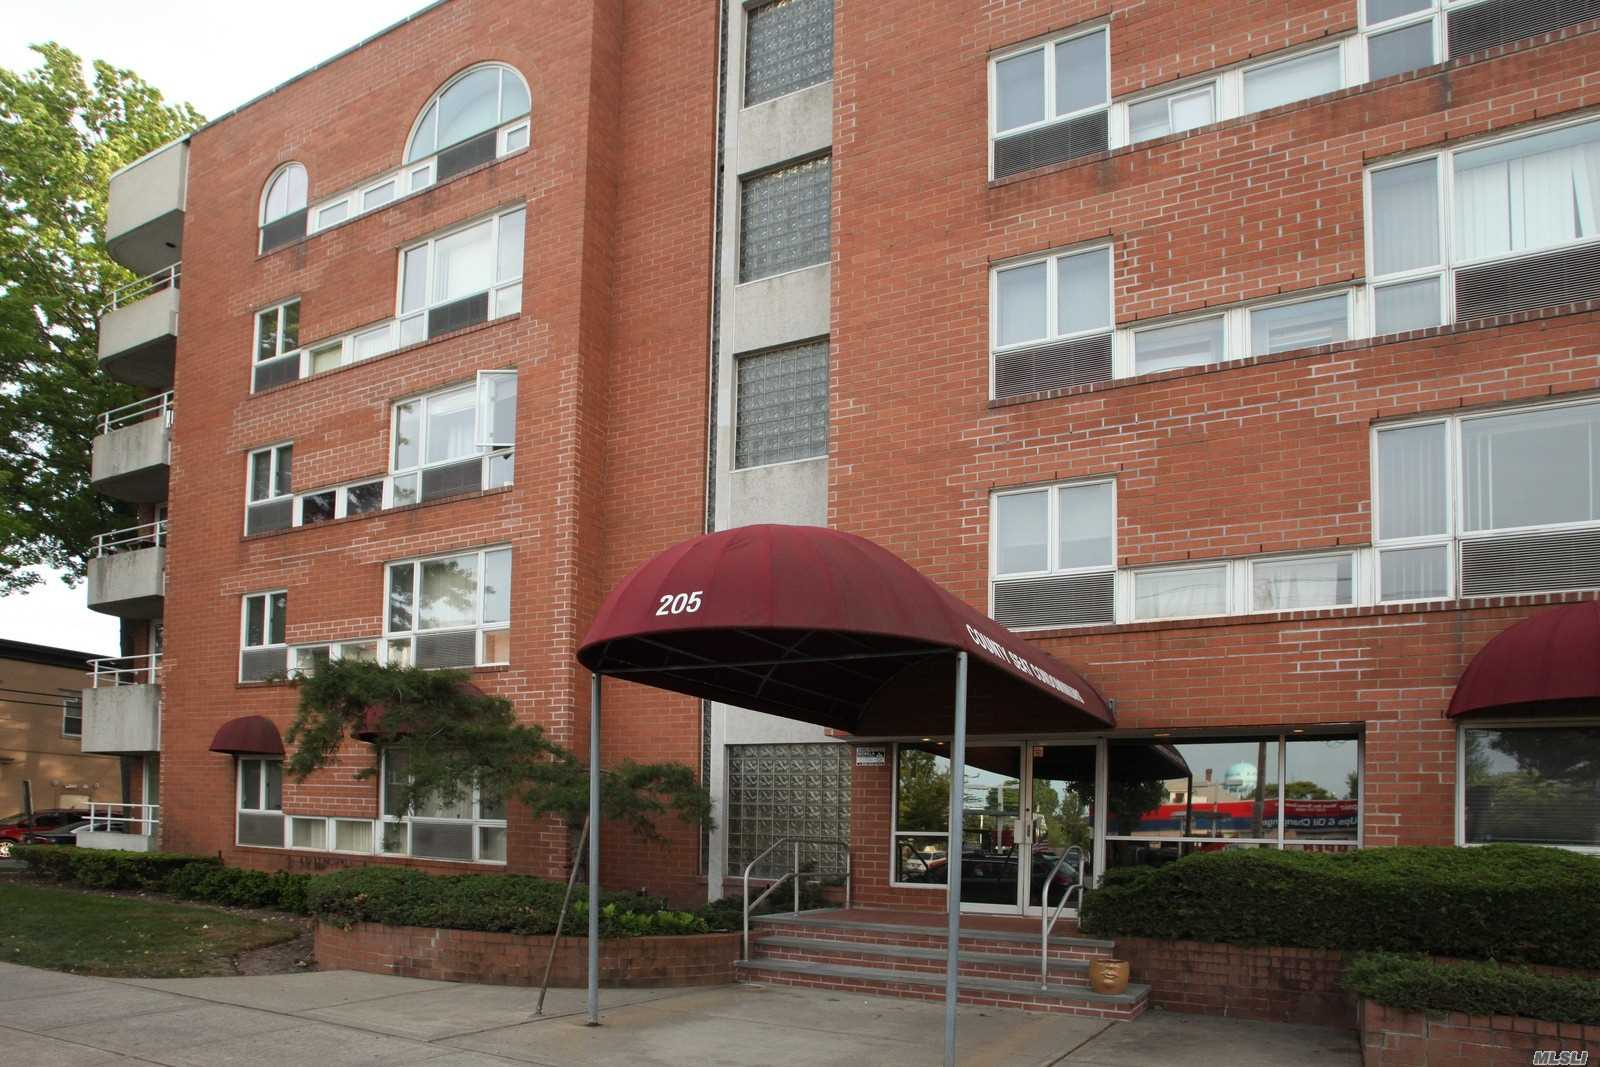 2 Bedroom , 2 Bathroom In Elevator Building. One Car Parking Spot.Closed To Winthrop Hospital And Lirr Train Station. Available In 01/01/2019.